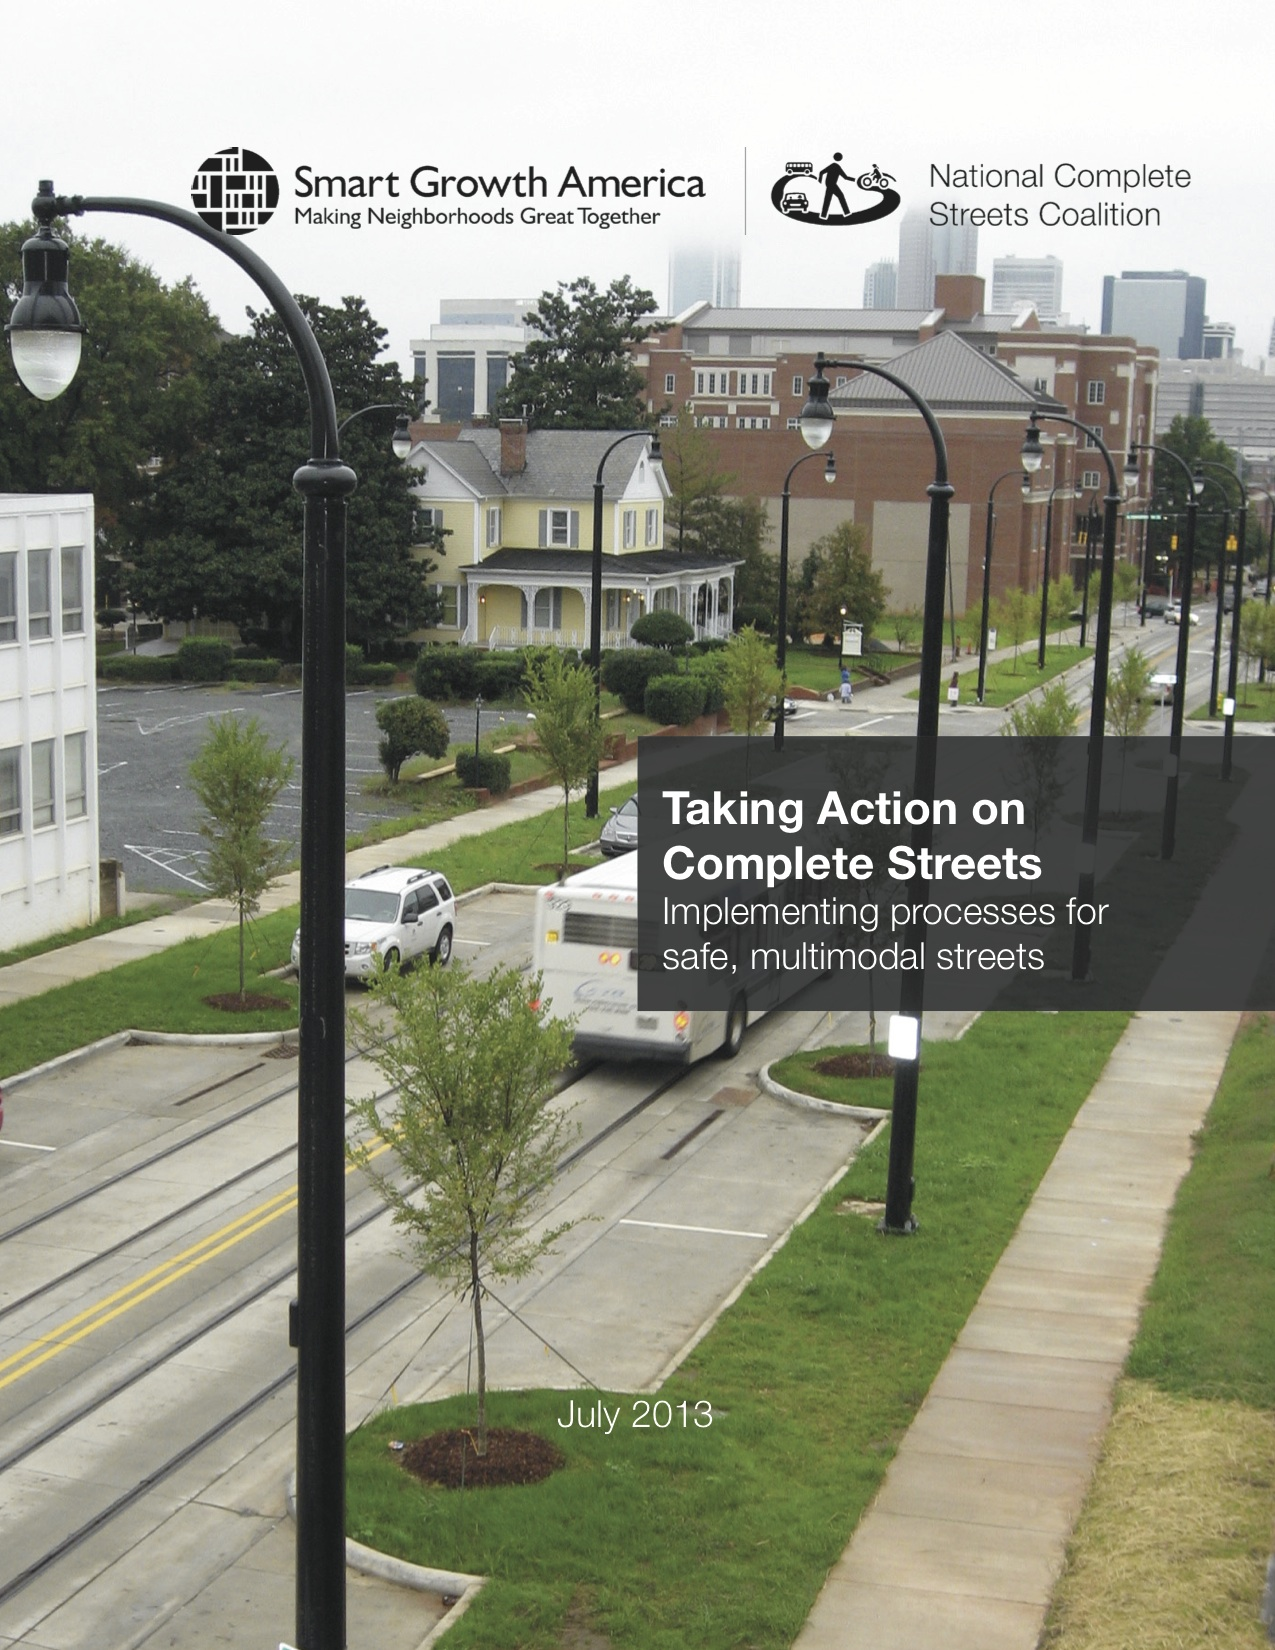 Taking Action on Complete Streets: Implementing processes for safe, multimodal streets